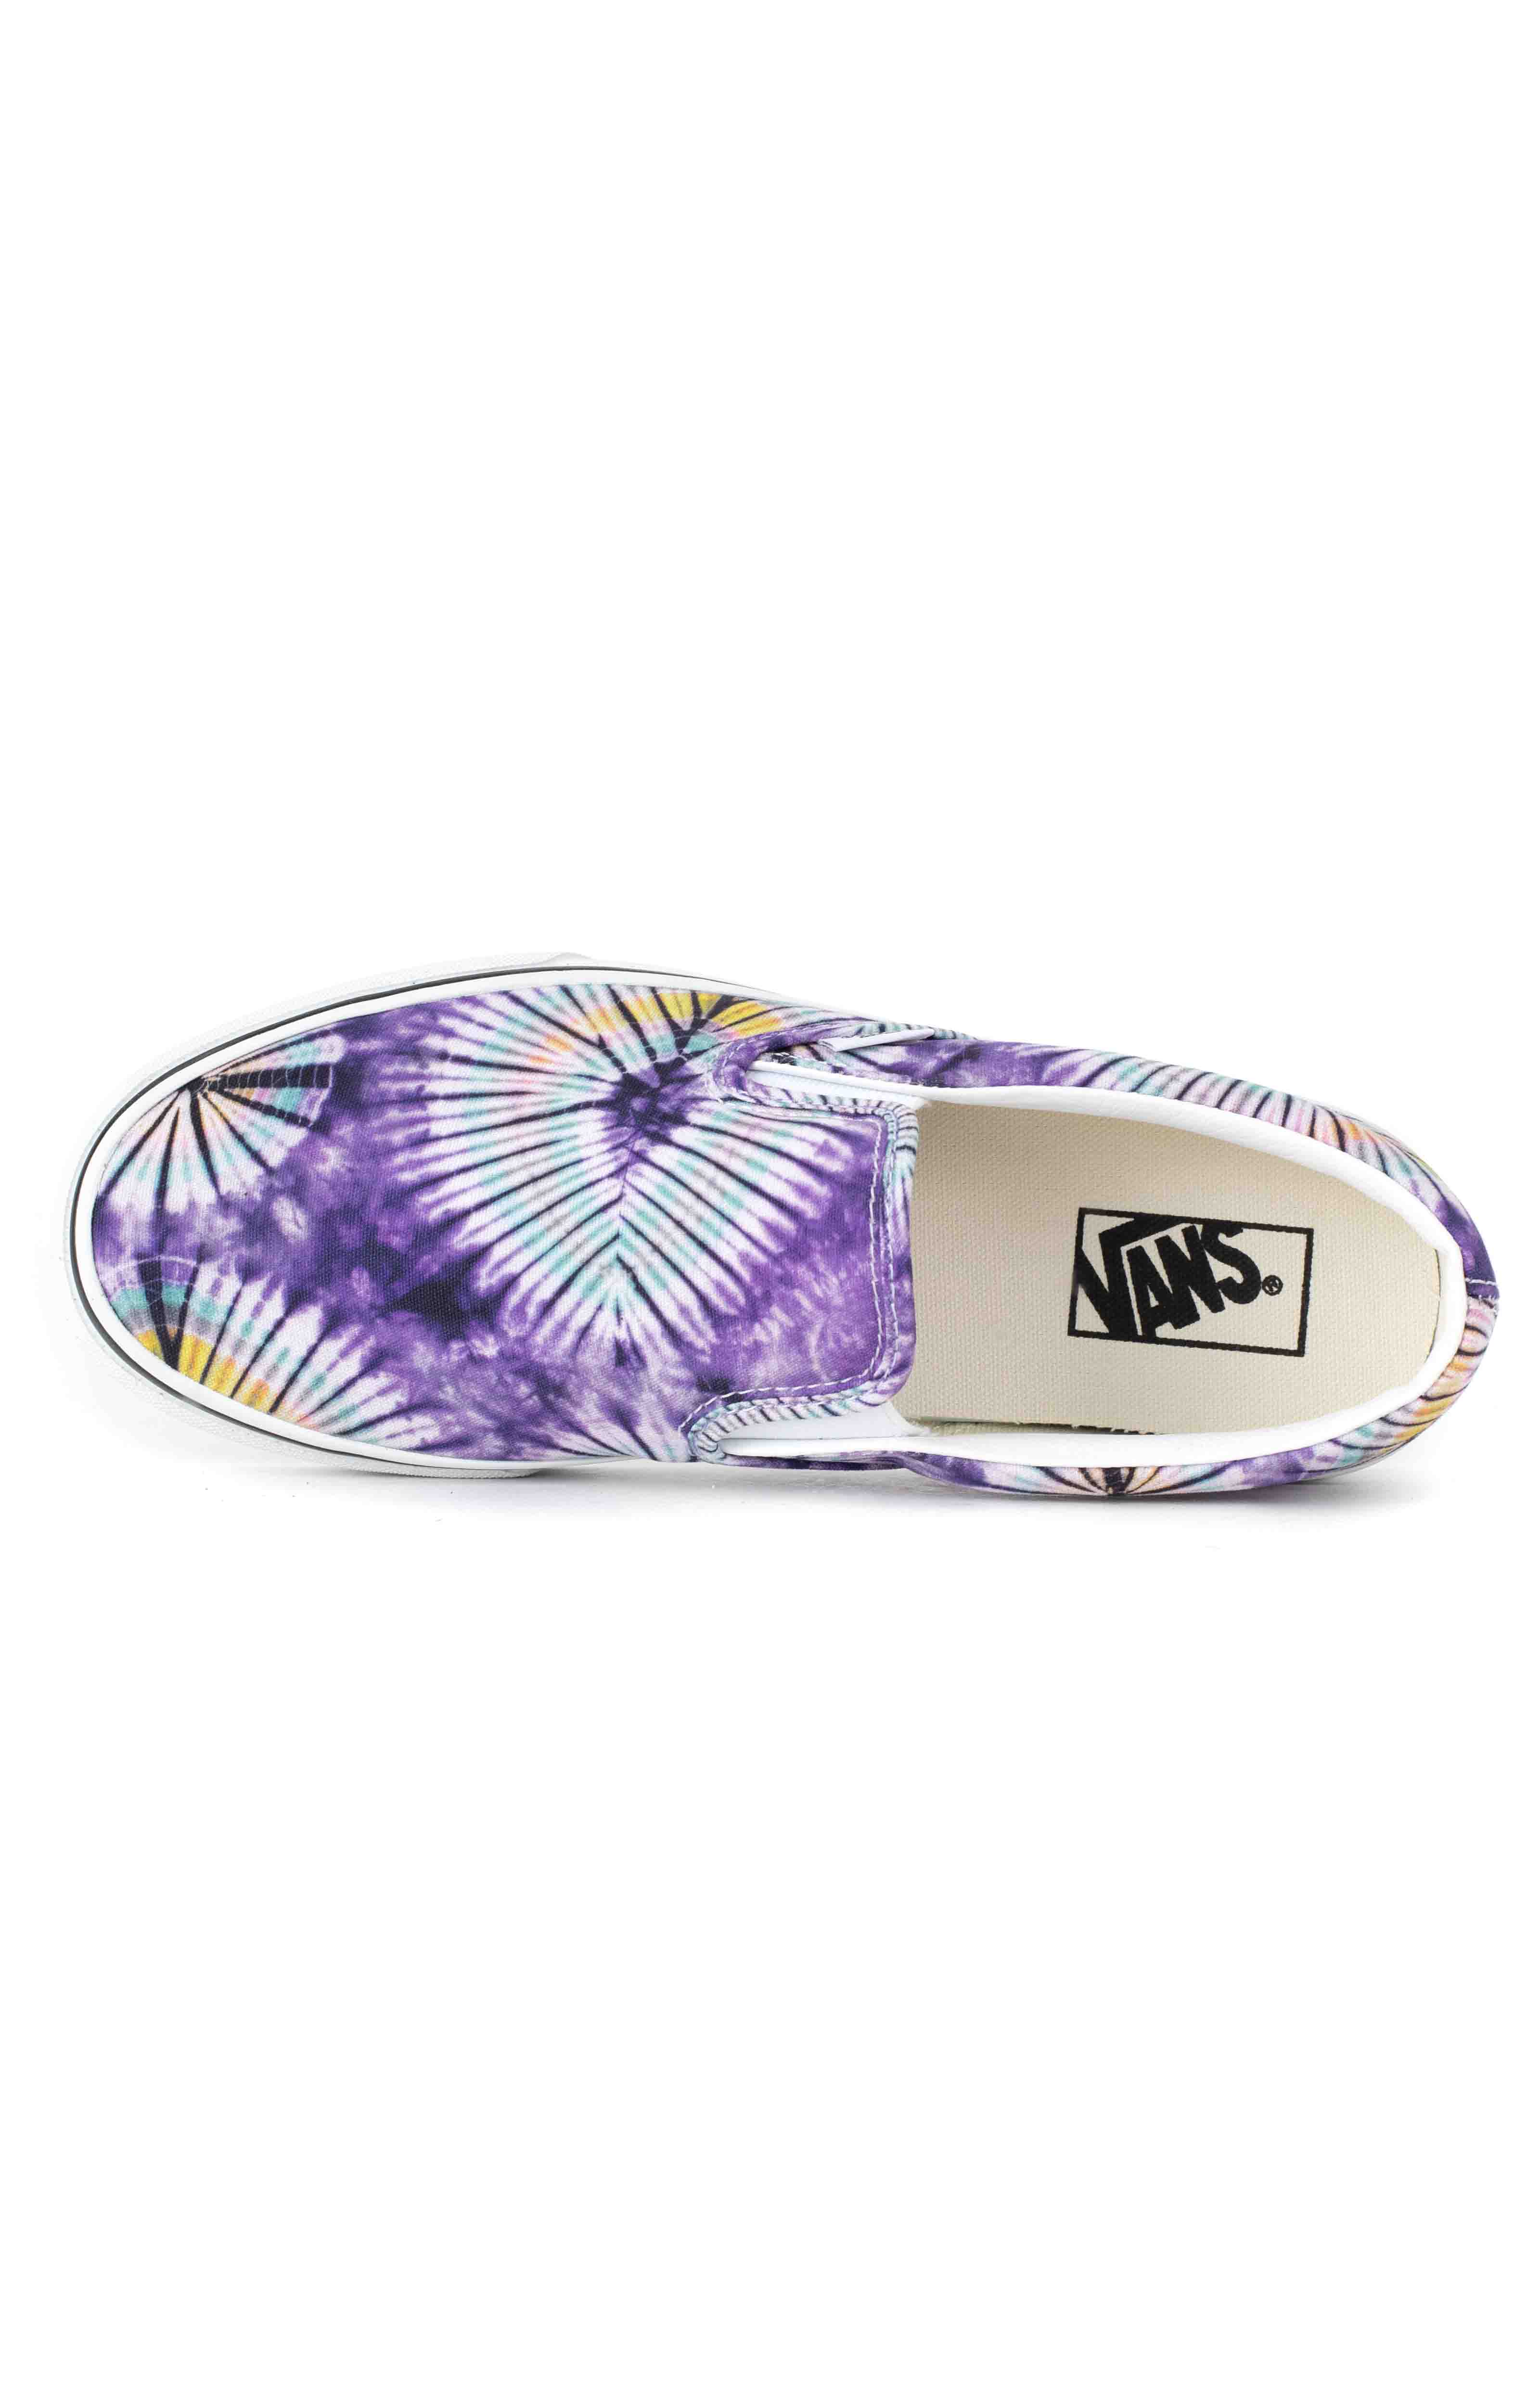 (AO86G6) New Age Classic Slip-On Shoes - Purple Tie-Dye  2